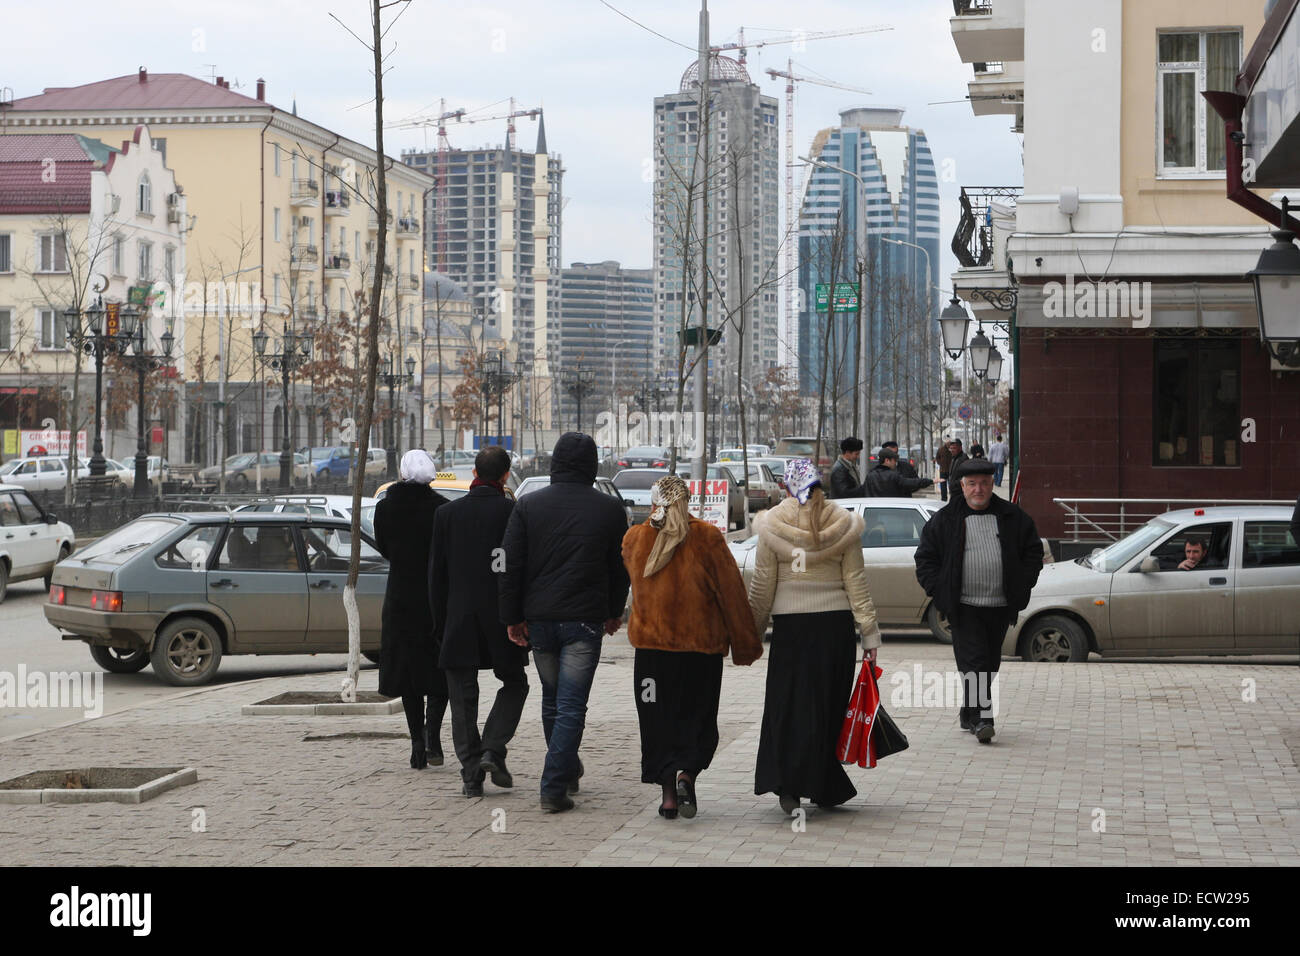 Putin Avenue, the former Victory Avenue, in the centre of the Chechen capital Grozny, Russia. It is the main street - Stock Image